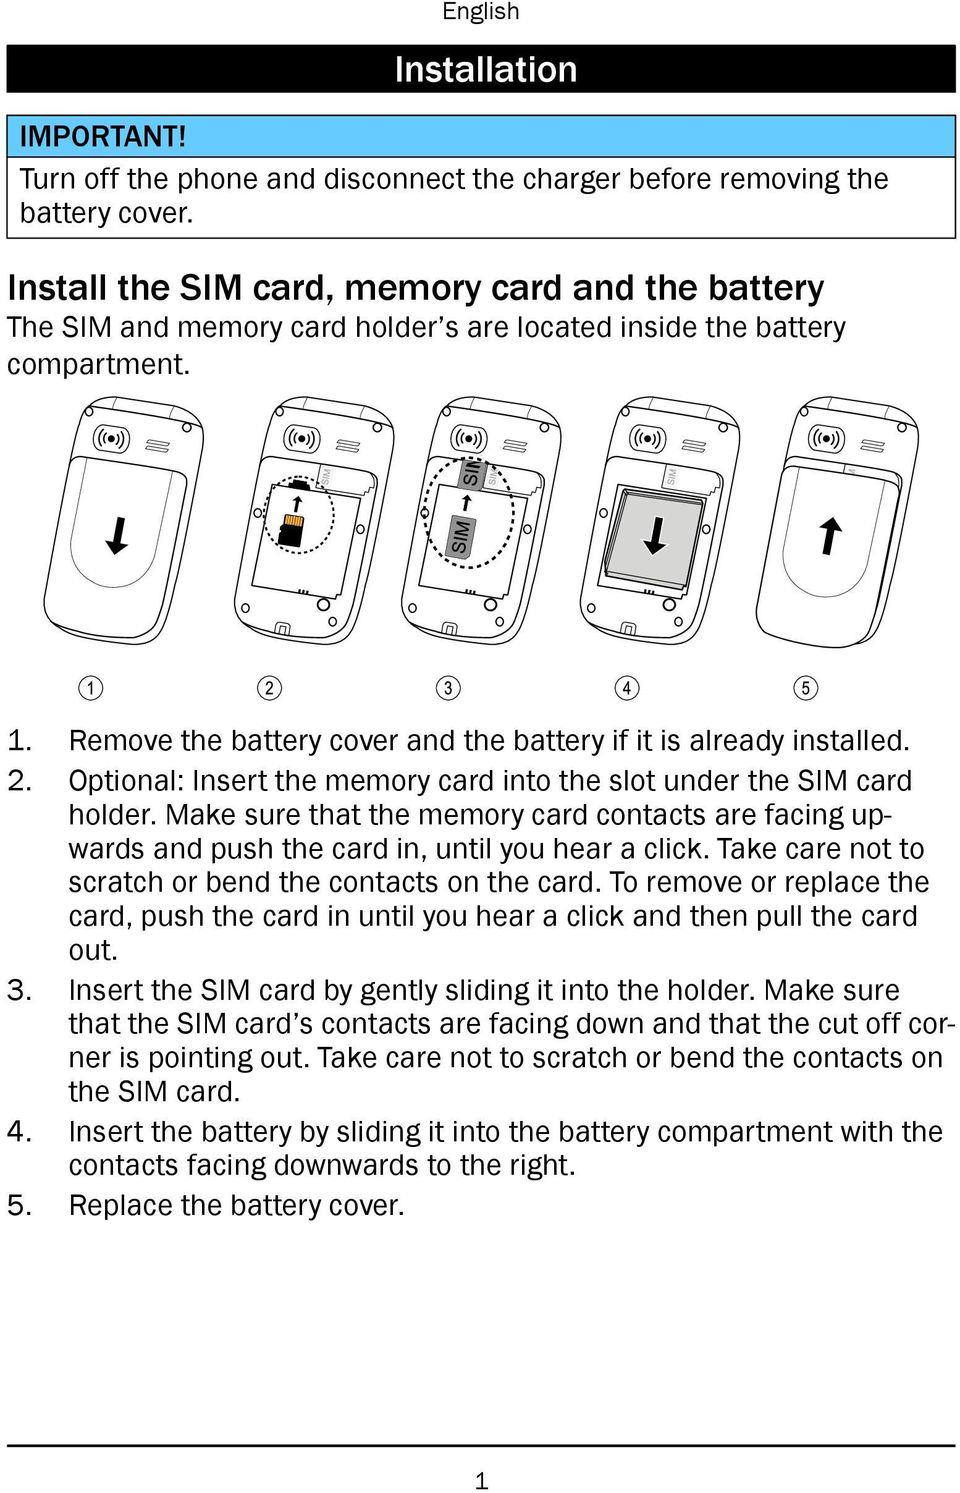 Remove the battery cover and the battery if it is already installed. 2. Optional: Insert the memory card into the slot under the SIM card holder.